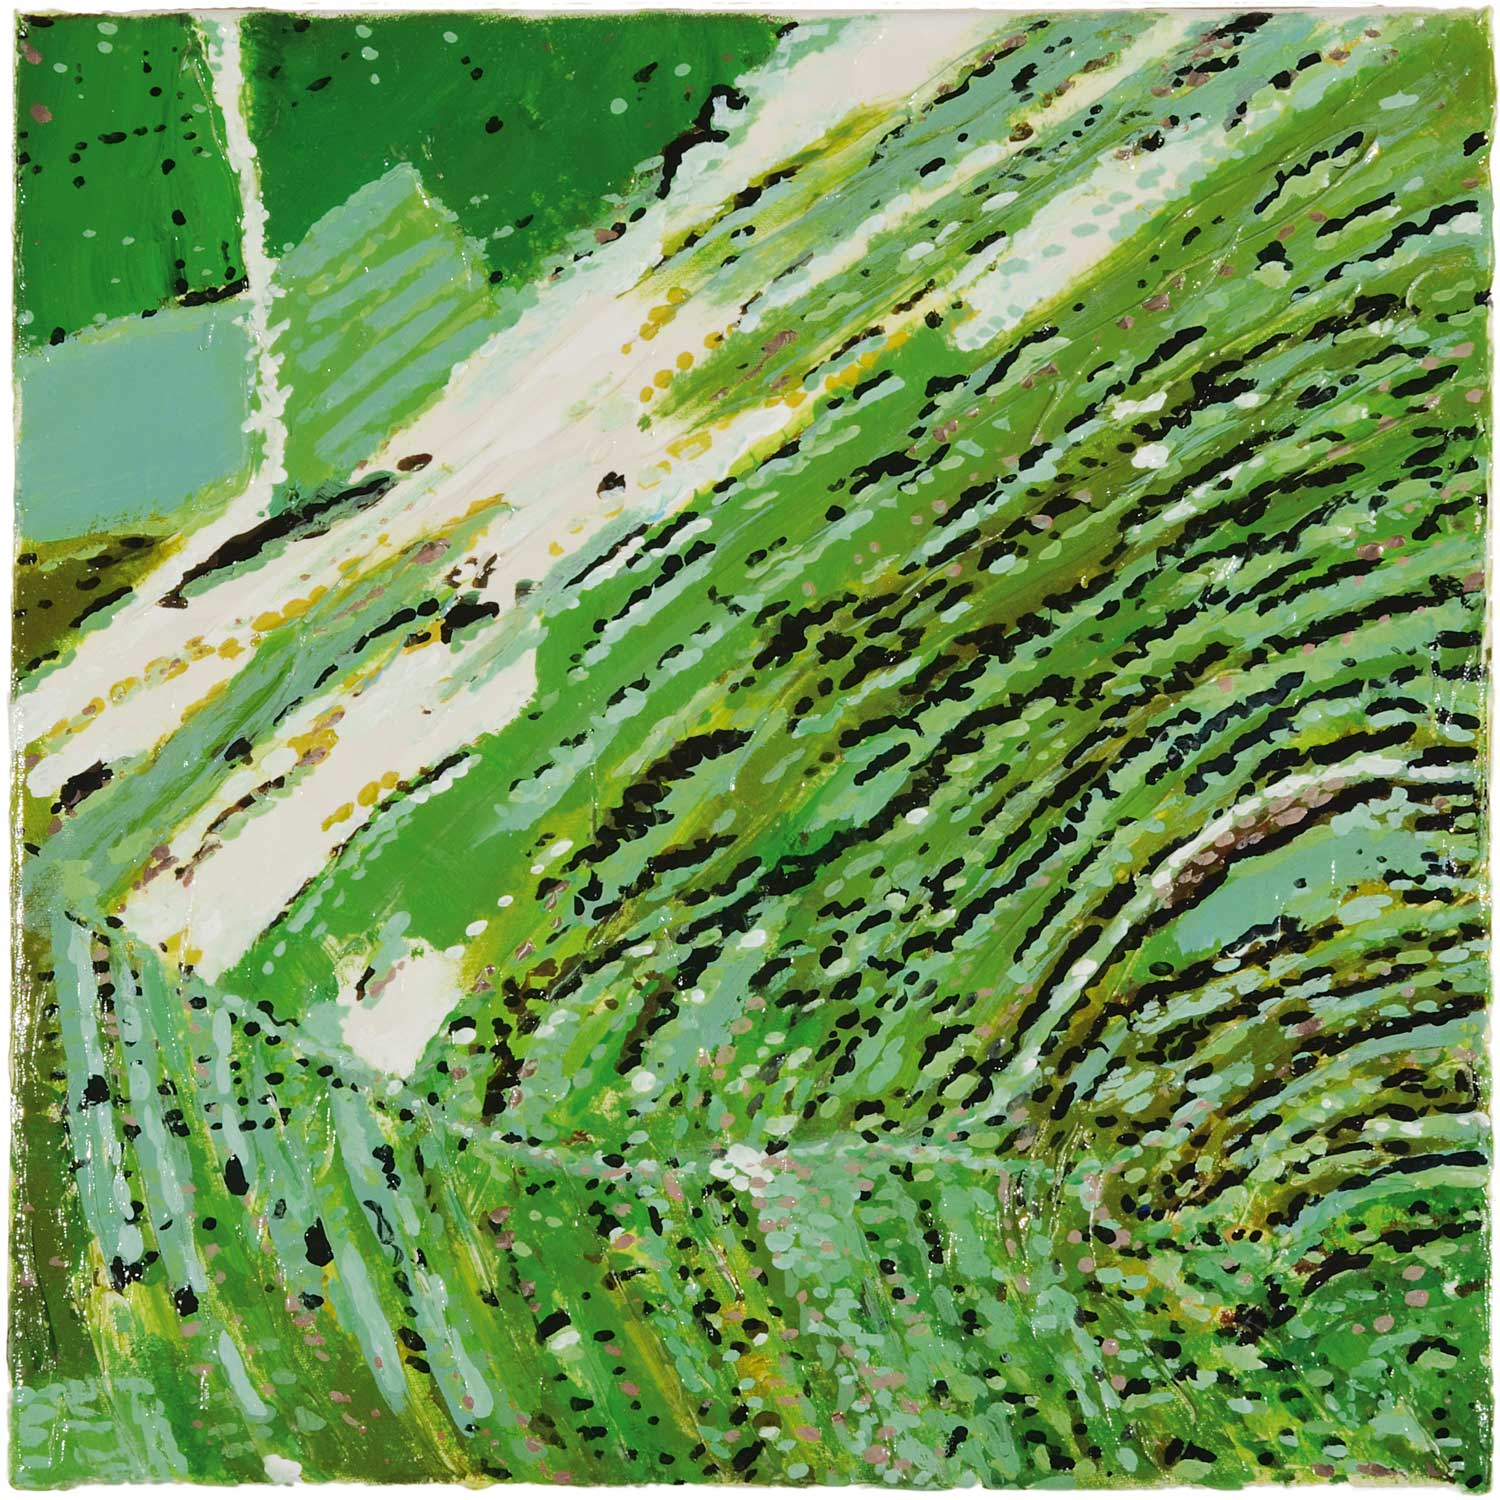 Nordkoreanische Landschaft / 